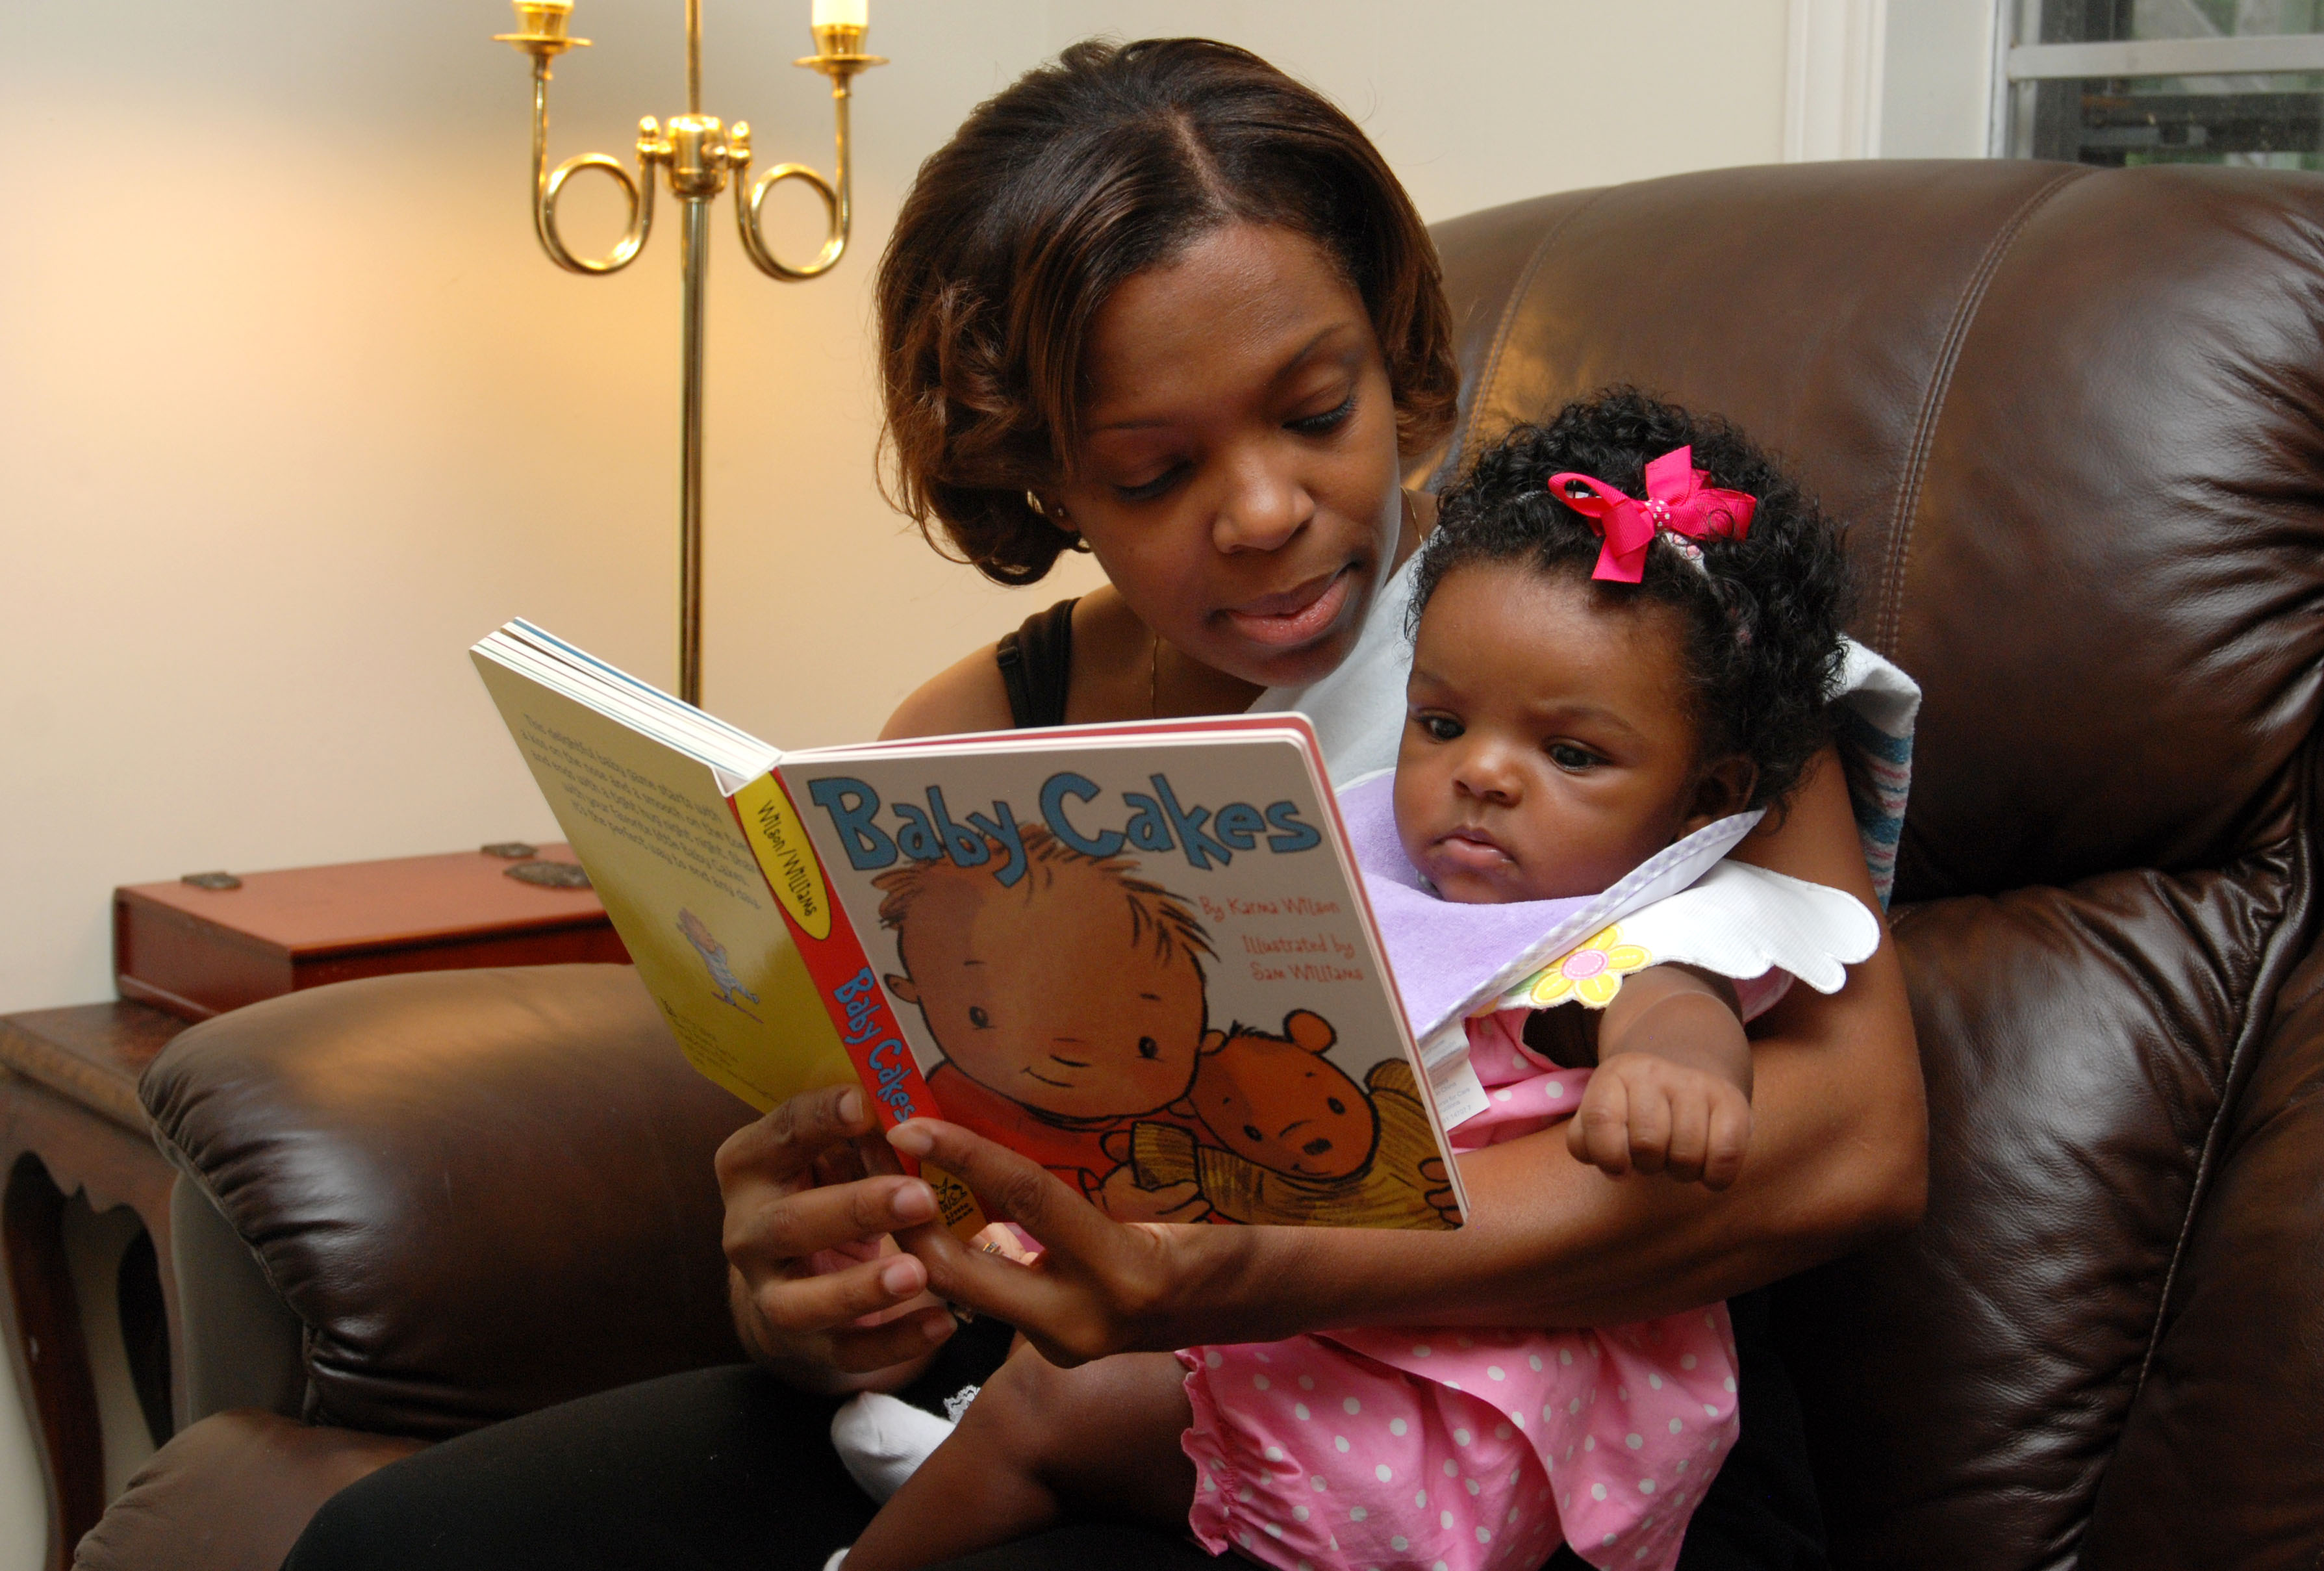 Reading to young ones benefits everyone